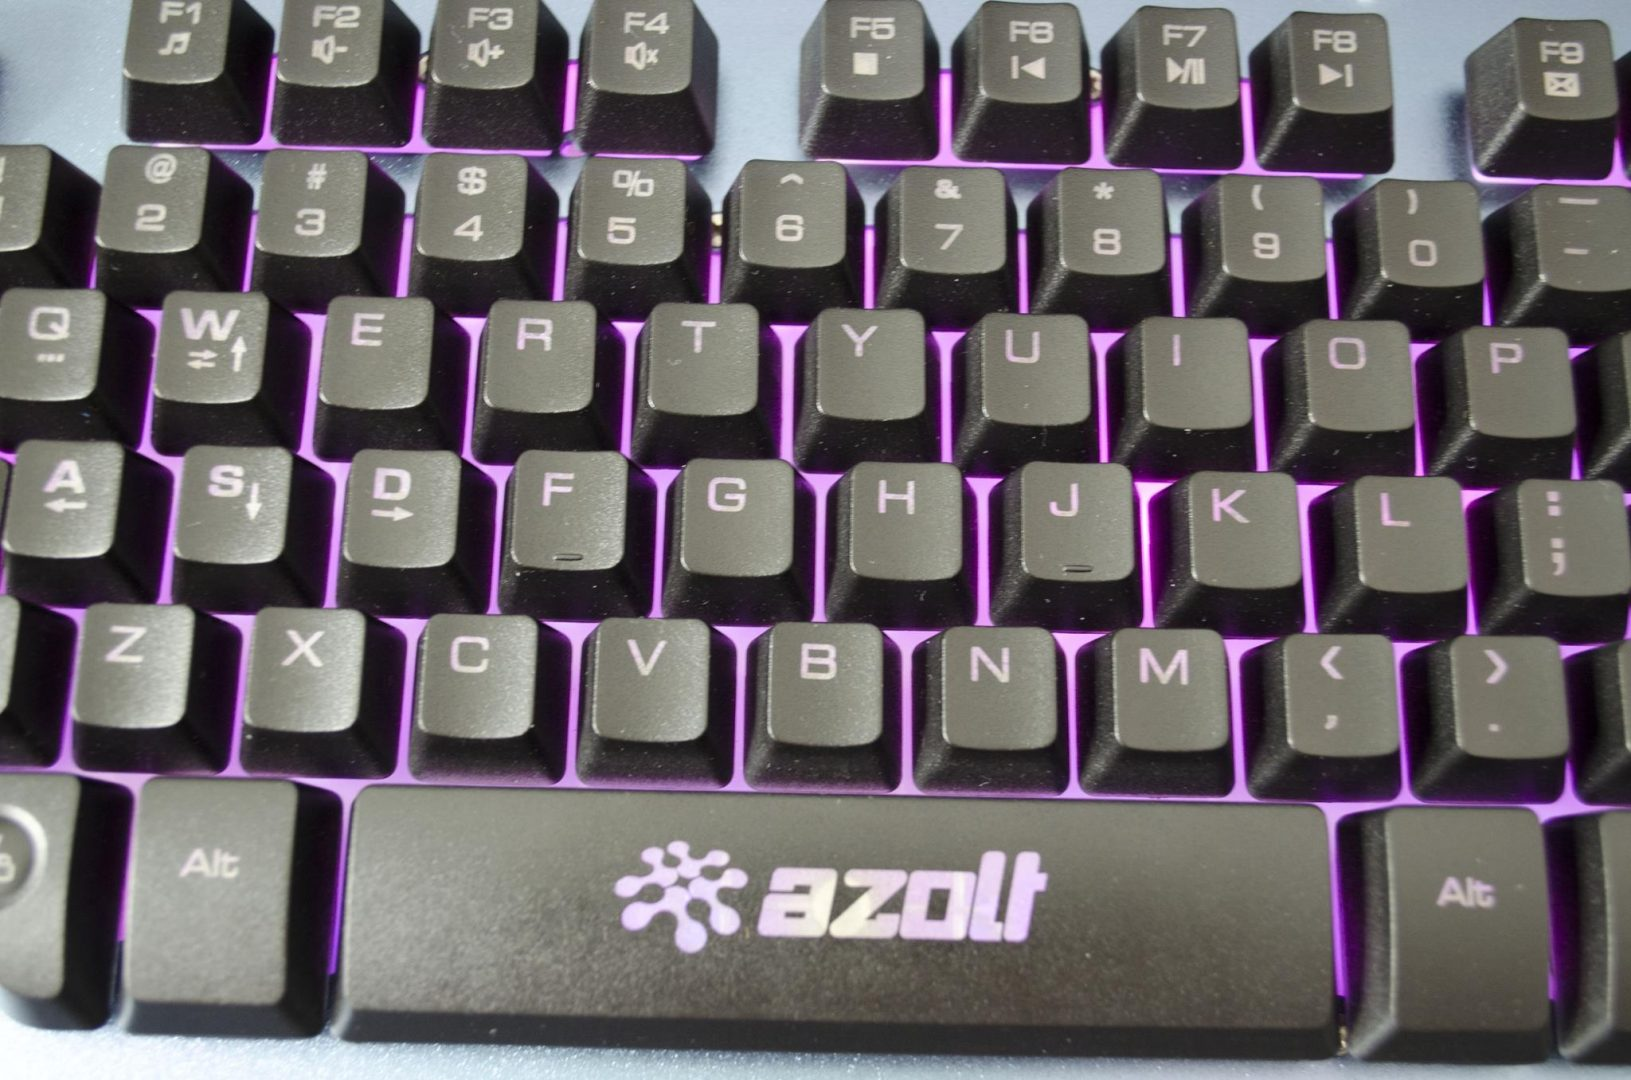 Azolt gCrusayder keyboard review_12